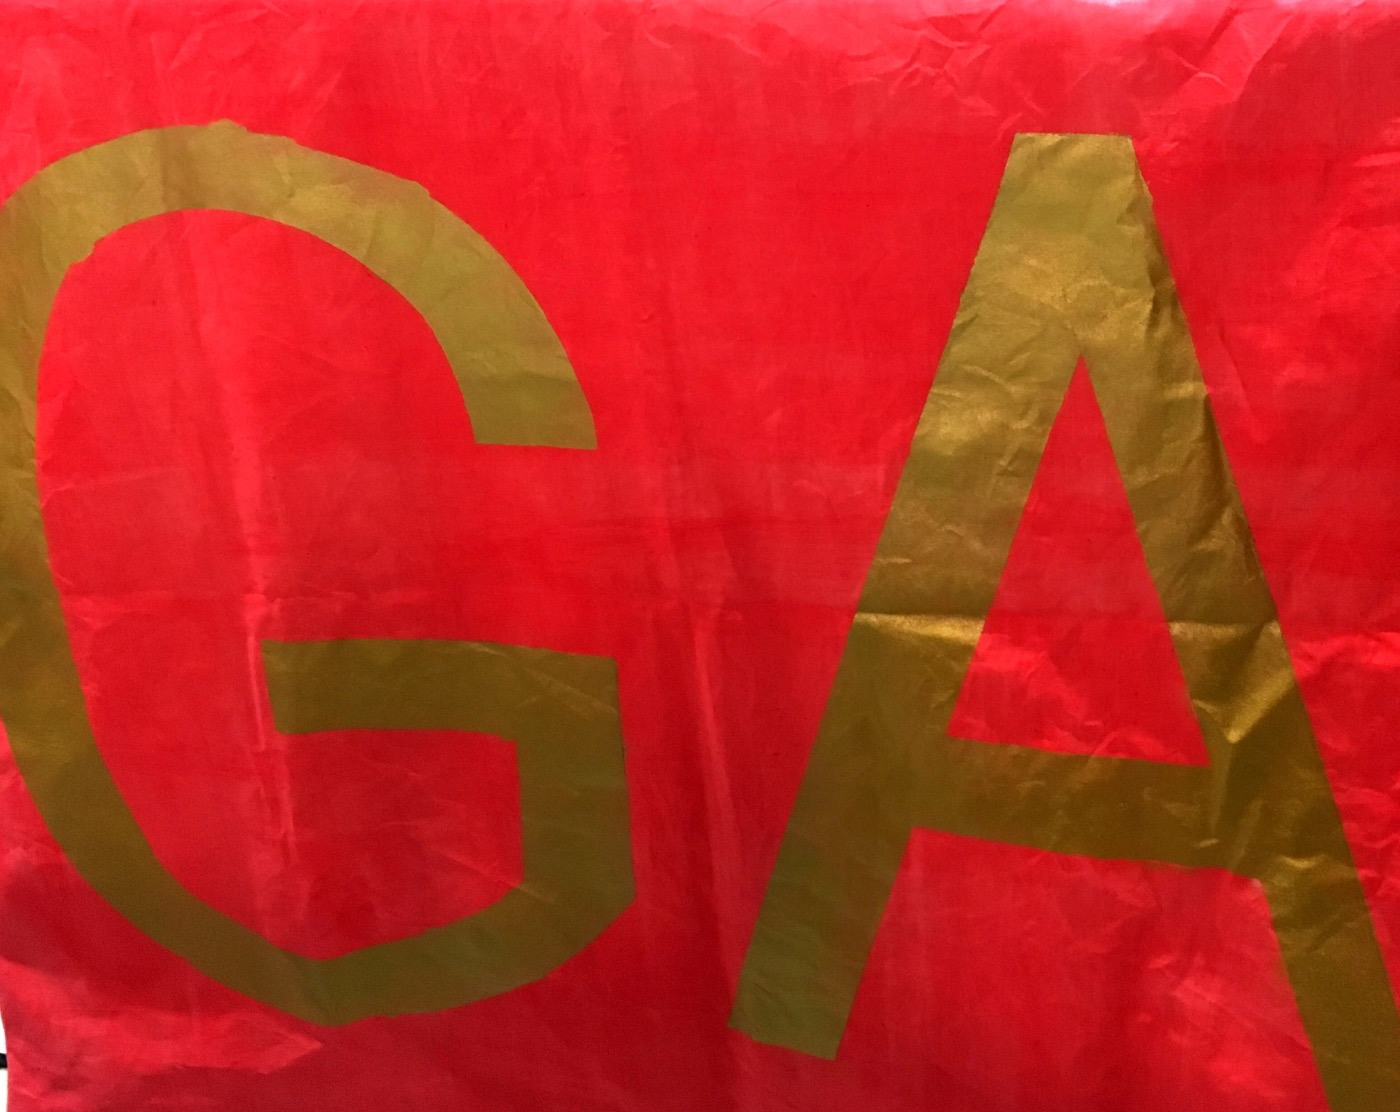 The Gentrifiers Anonymous flag